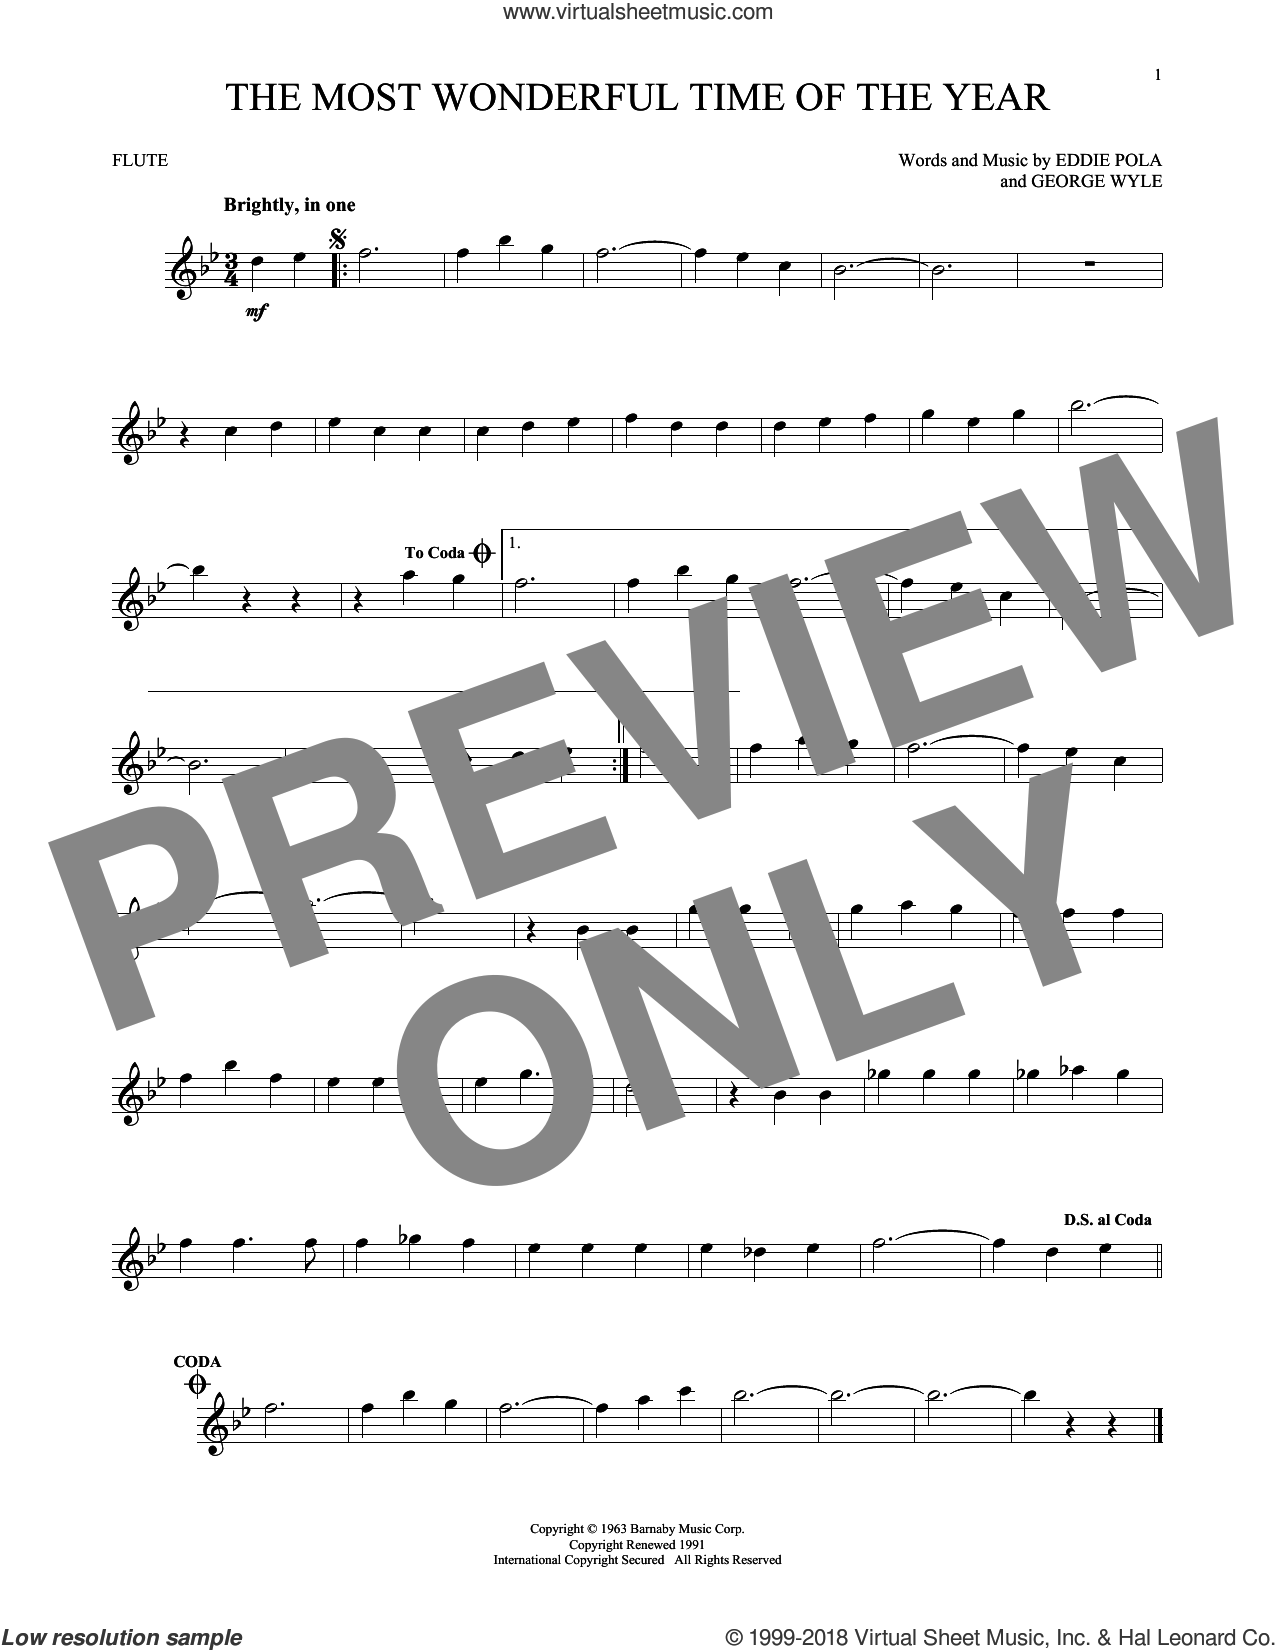 The Most Wonderful Time Of The Year sheet music for flute solo by George Wyle, Andy Williams and Eddie Pola. Score Image Preview.